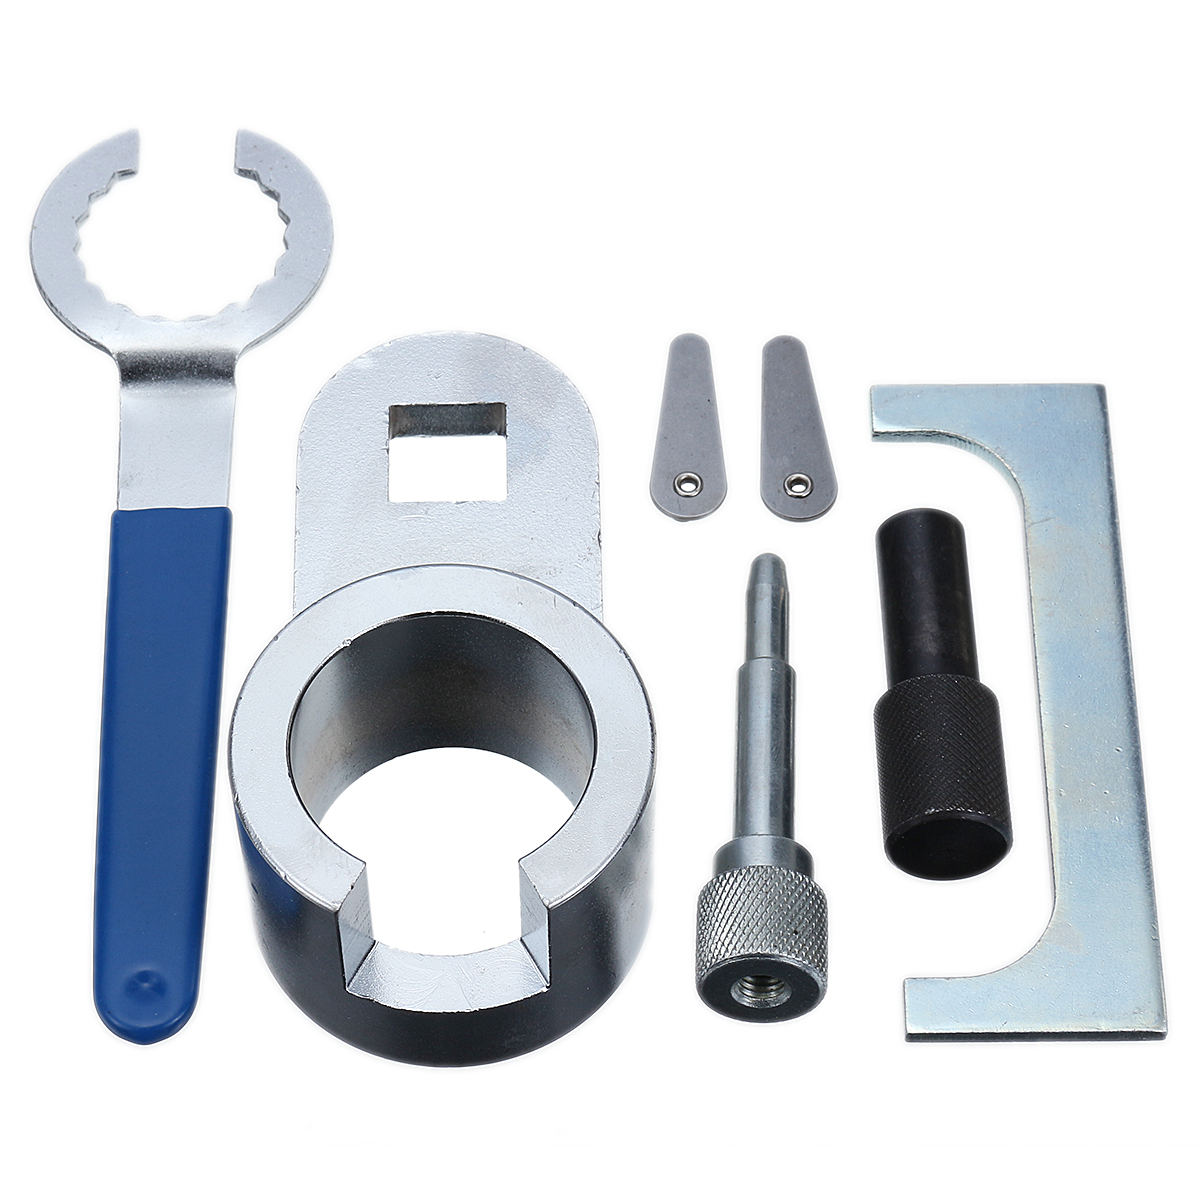 Timing Locking Tool Kit For Engine Adjustment Camshaft Crankshaft Carbon Steel